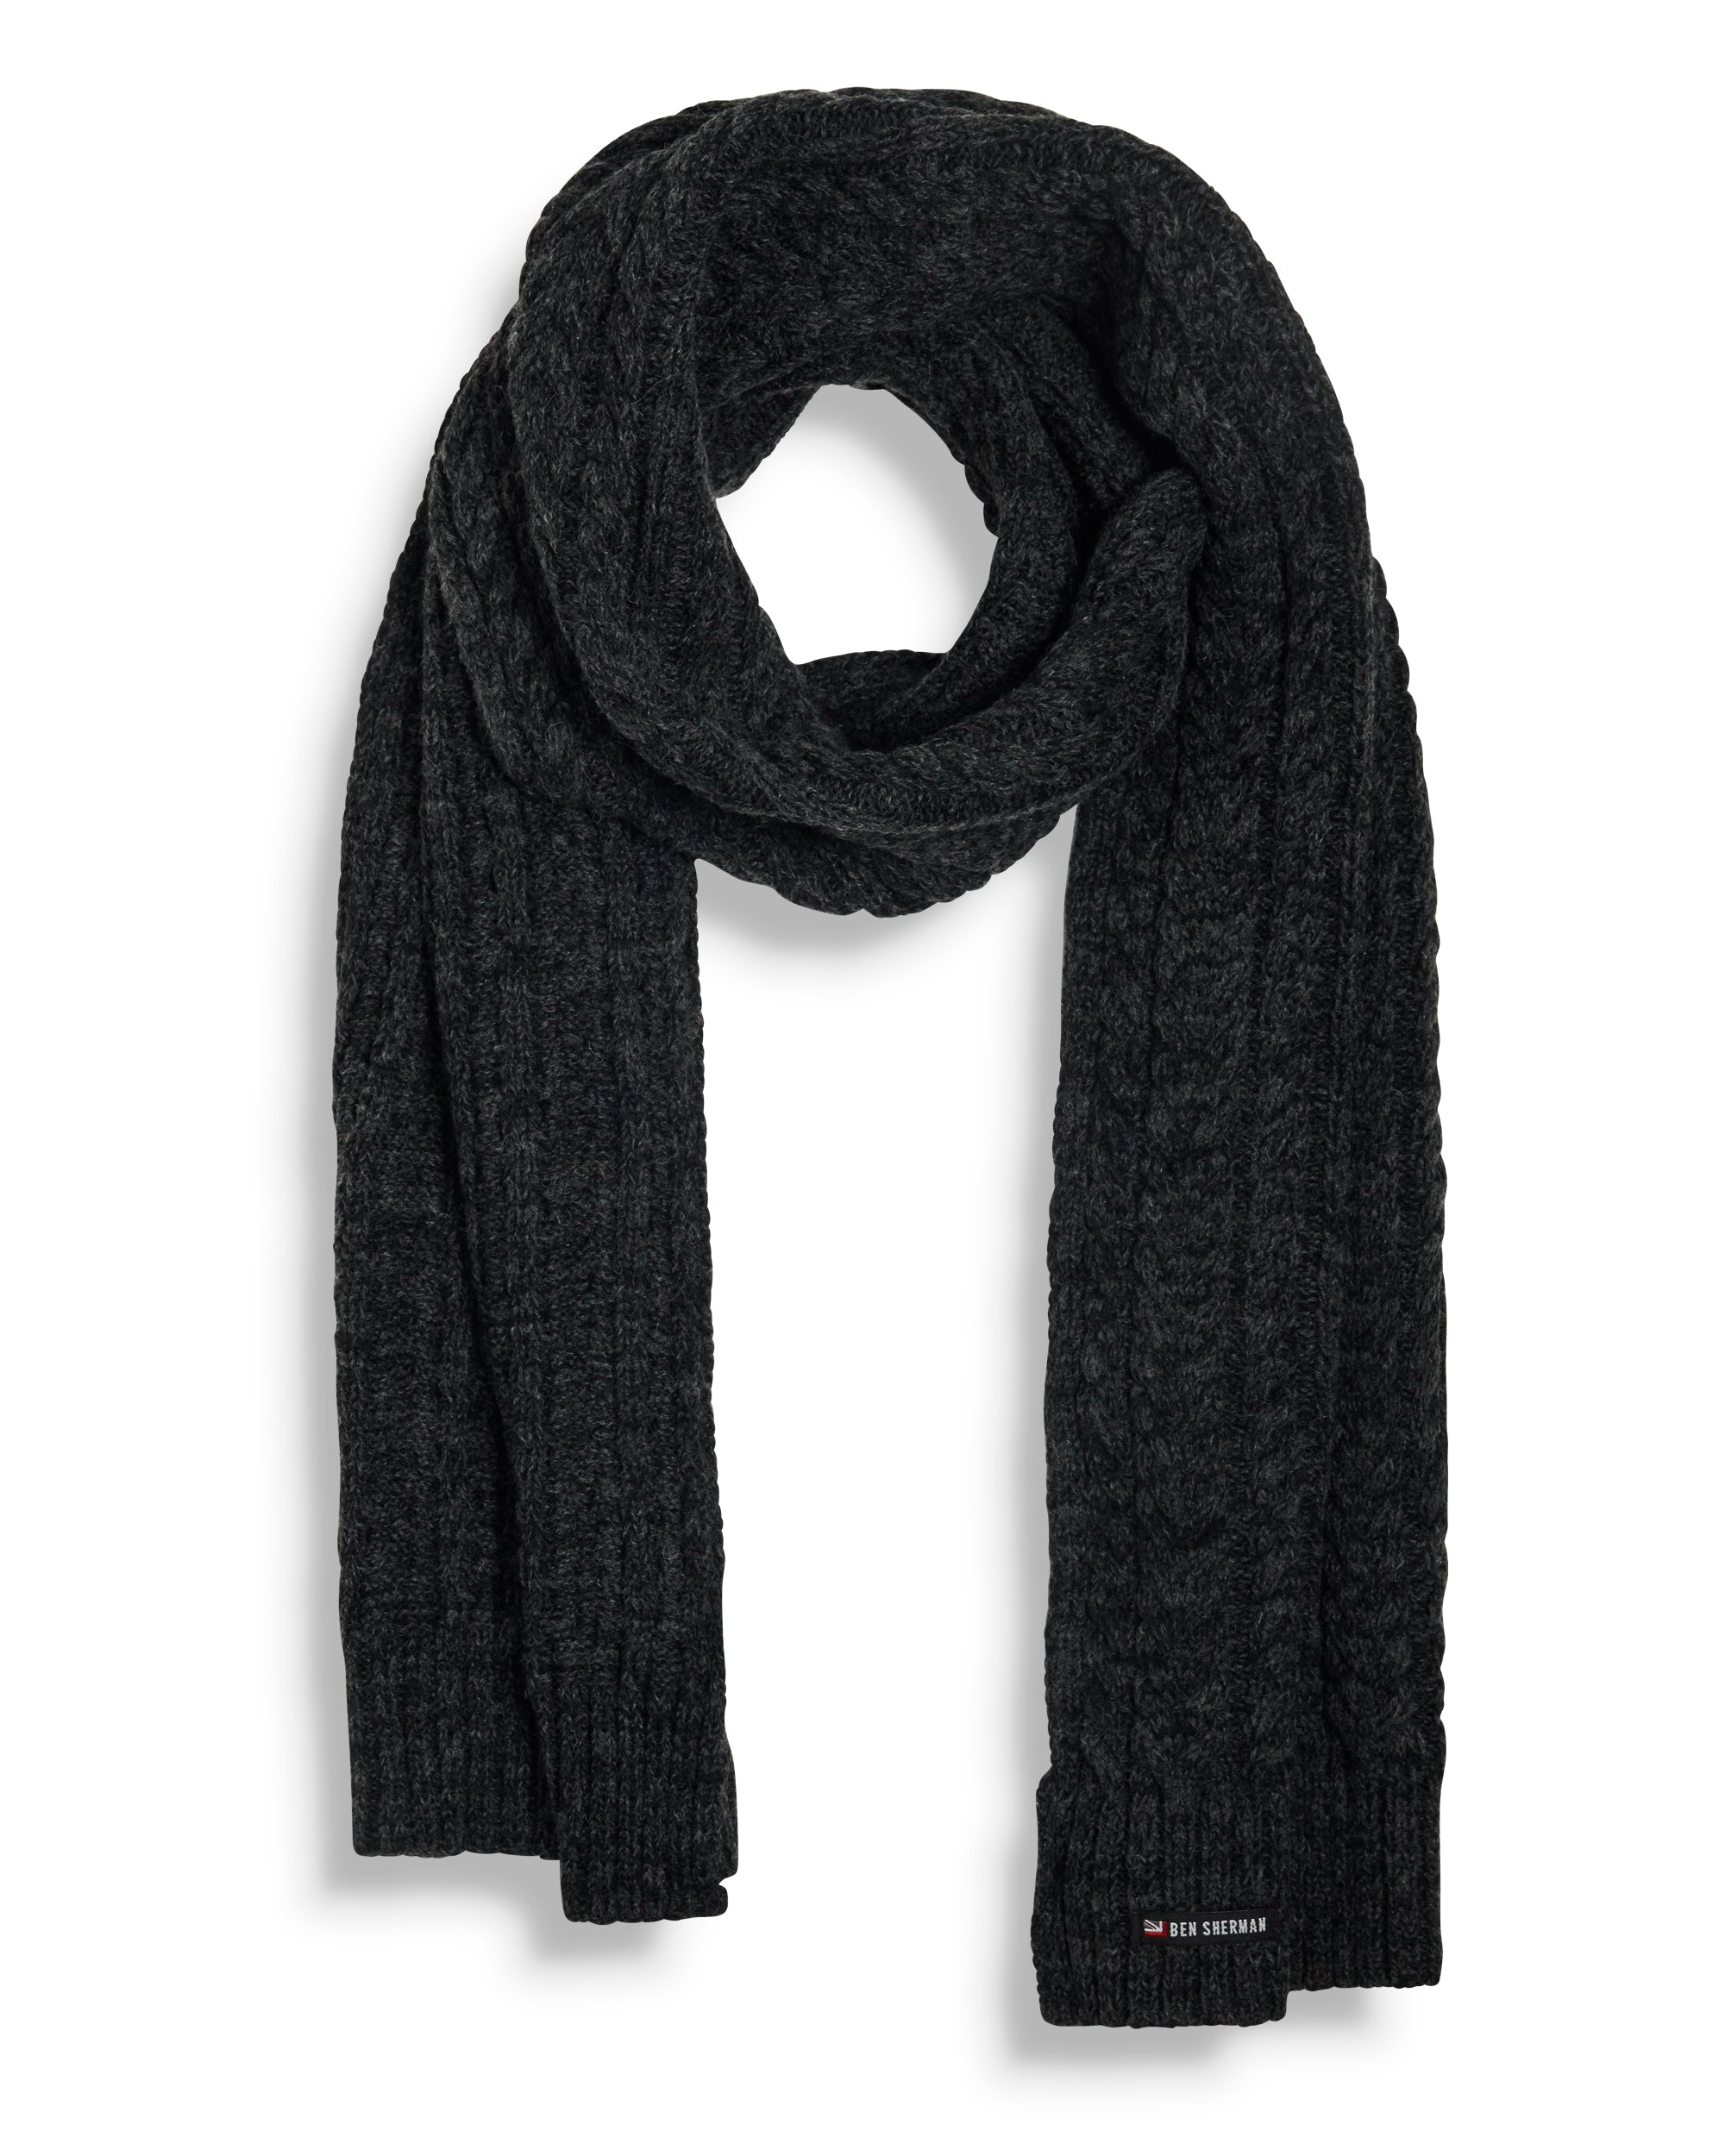 Cable Knit Oblong Scarf - Black